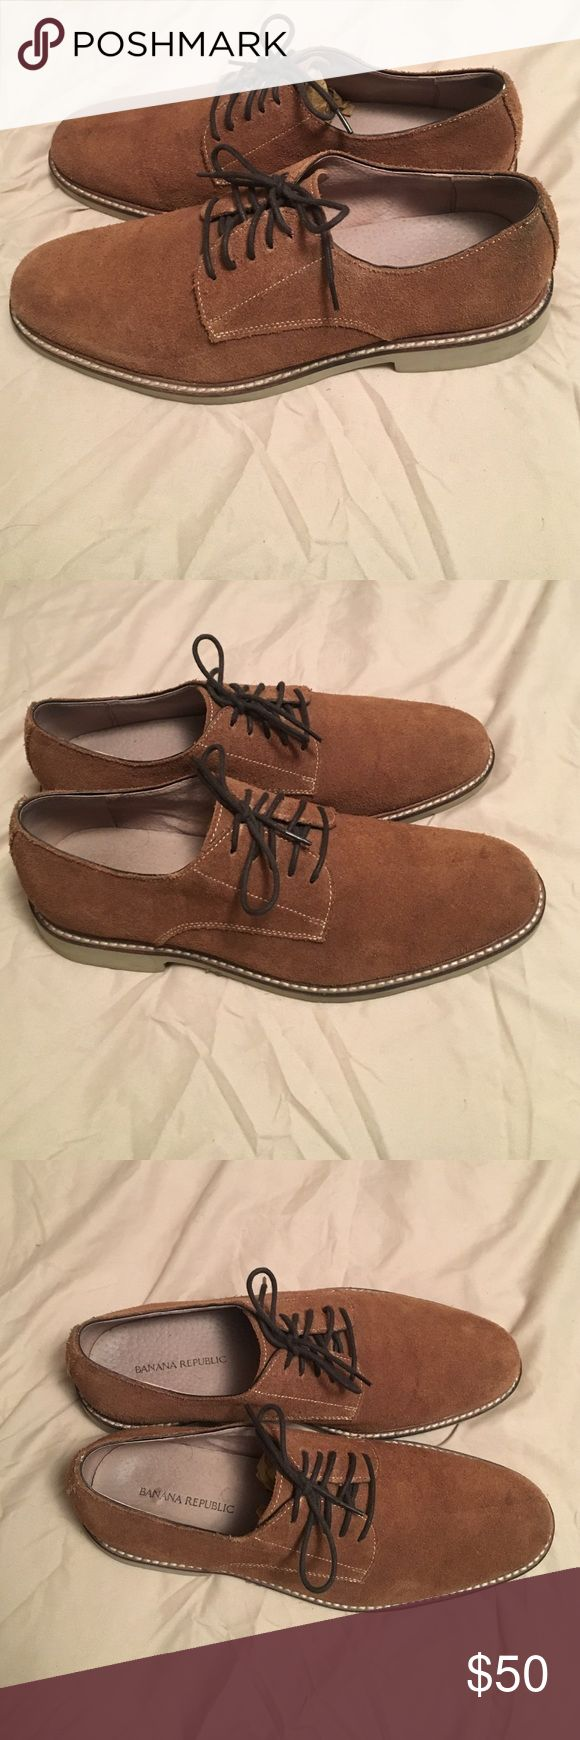 Tan Suede Shoes from Banana Republic Tan Suede Shoes from Banana Republic, size 9, lightly worn.. maybe 5 times max. Good condition. Too many shoes and wanting to get rid of anything I have two of. Banana Republic Shoes Oxfords & Derbys